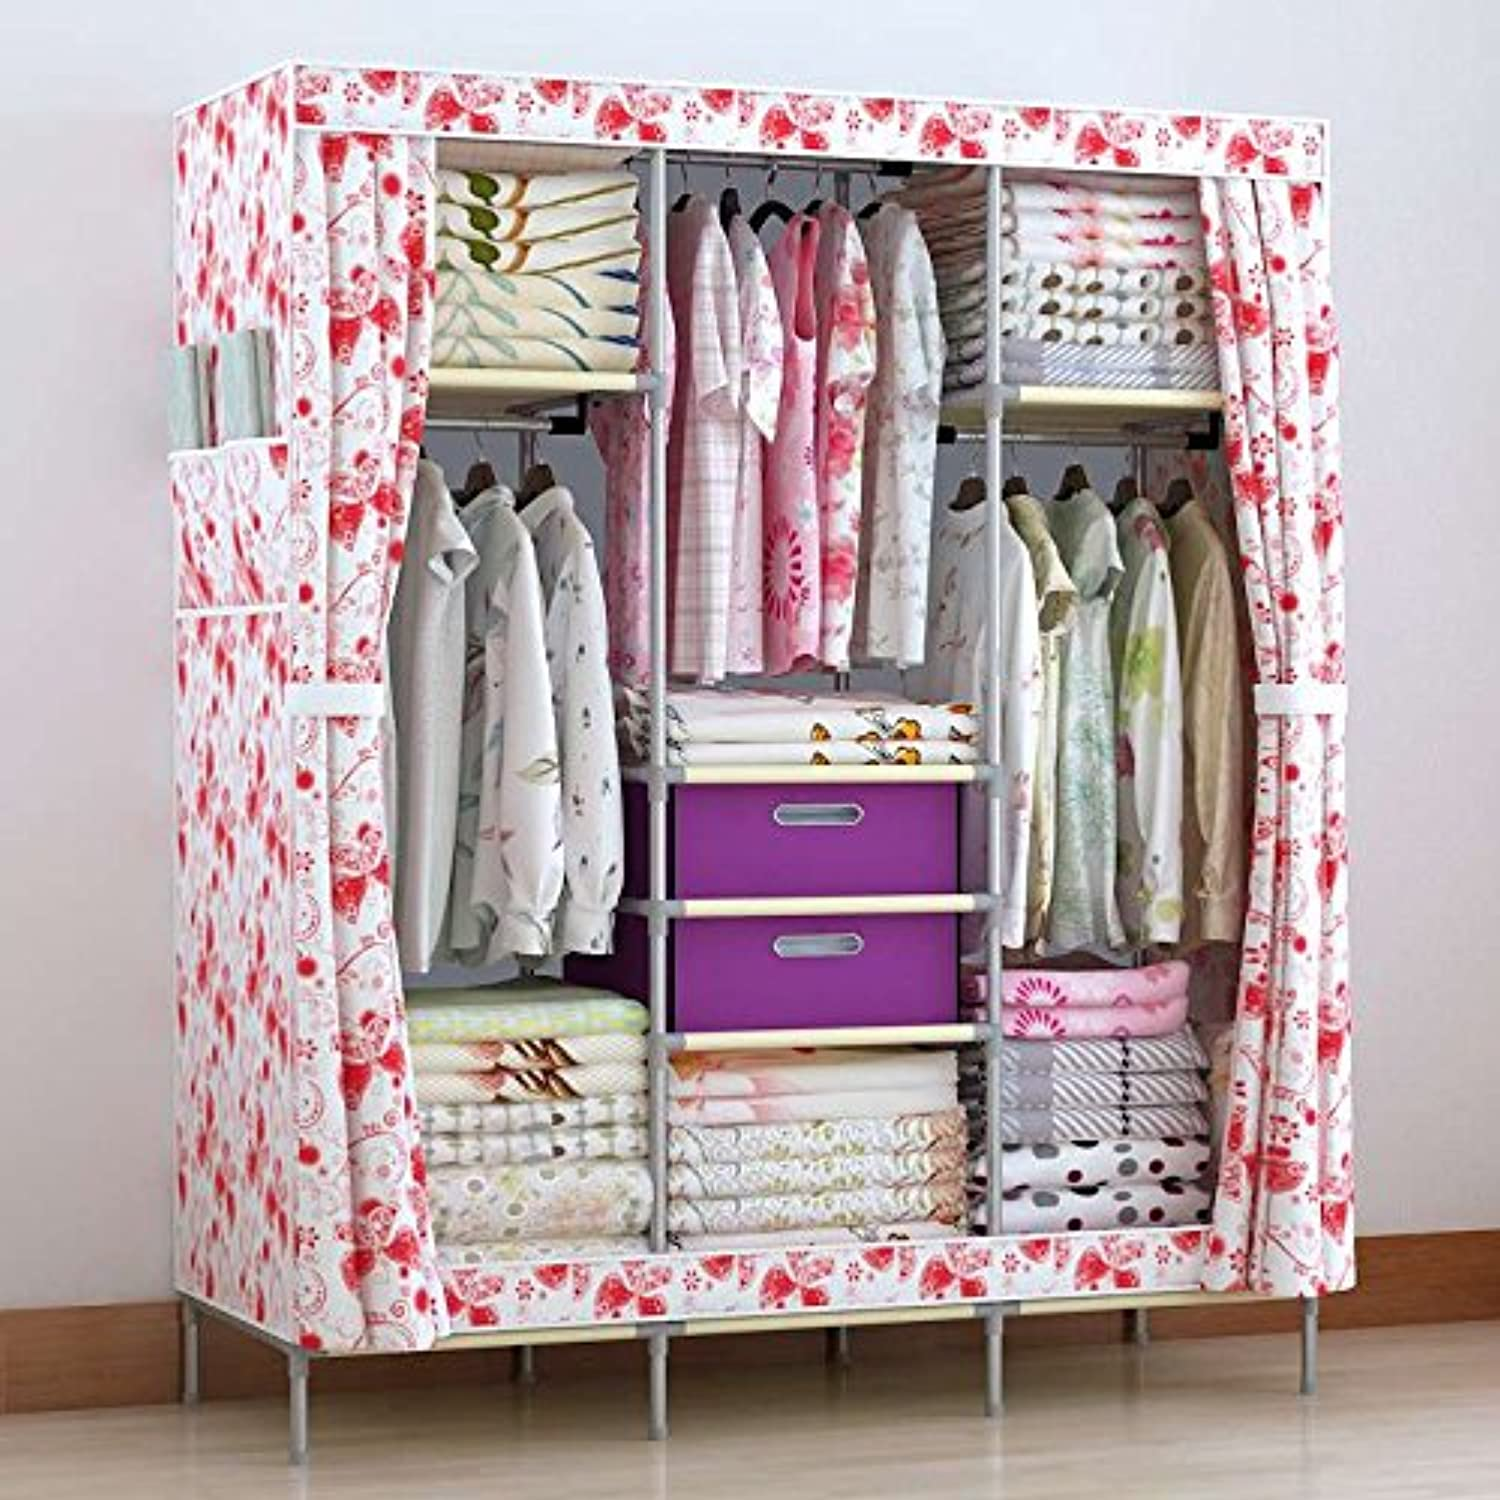 Generic New Portable Double Closet Storage Organizer Wardrobe Hanging Space Clothes Cabinet + Free 2 Storage Boxes